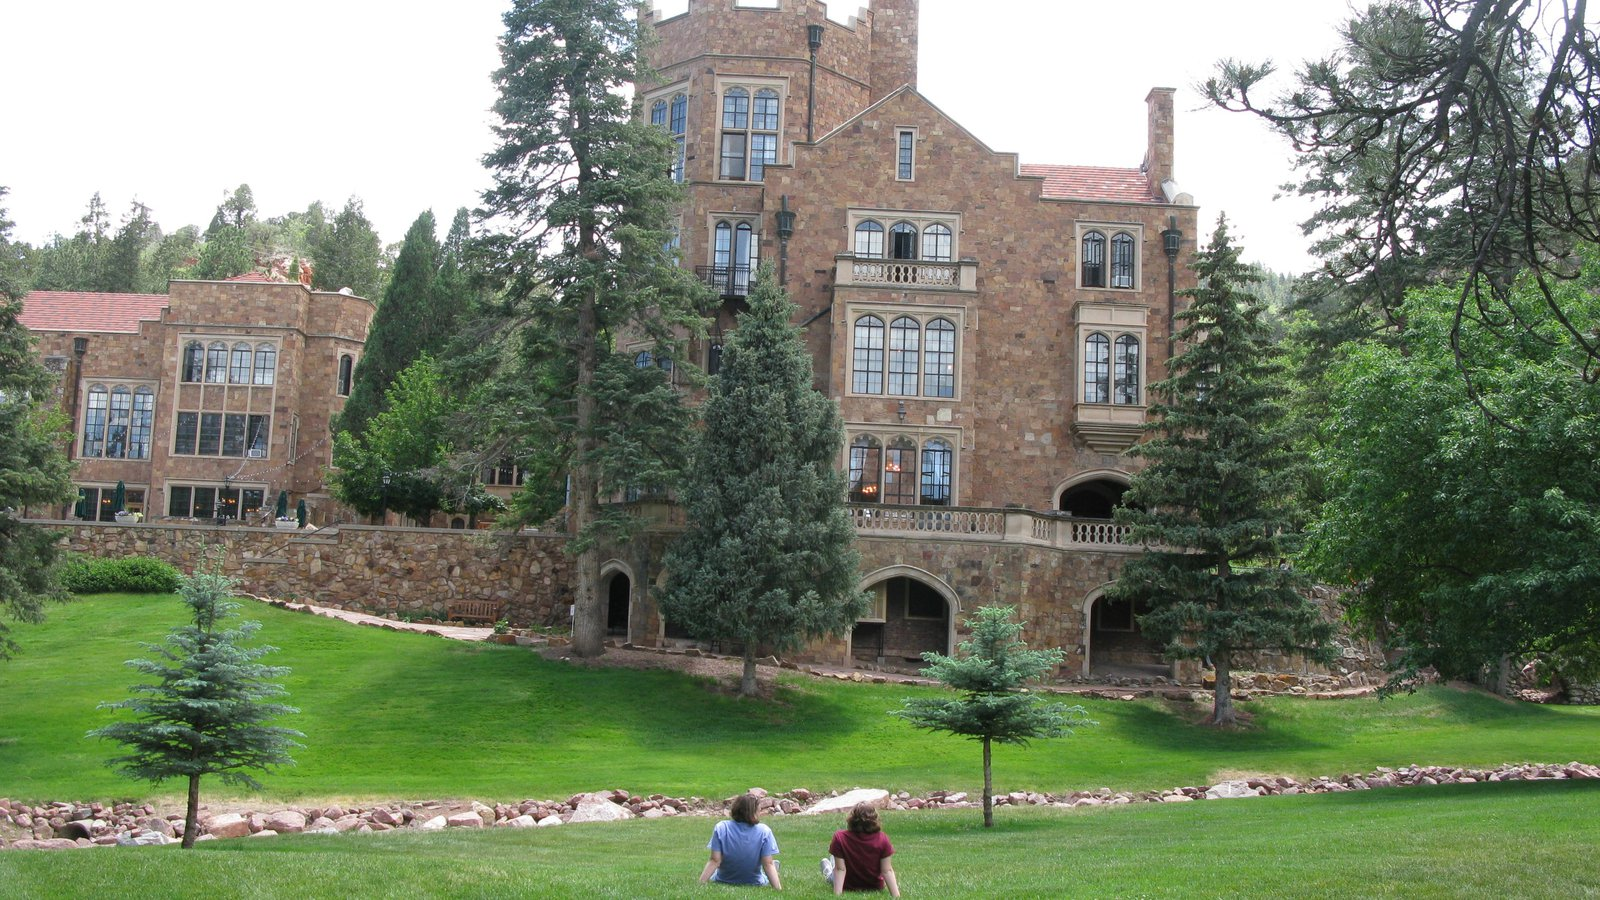 Glen Eyrie Castle featuring a garden, heritage architecture and chateau or palace